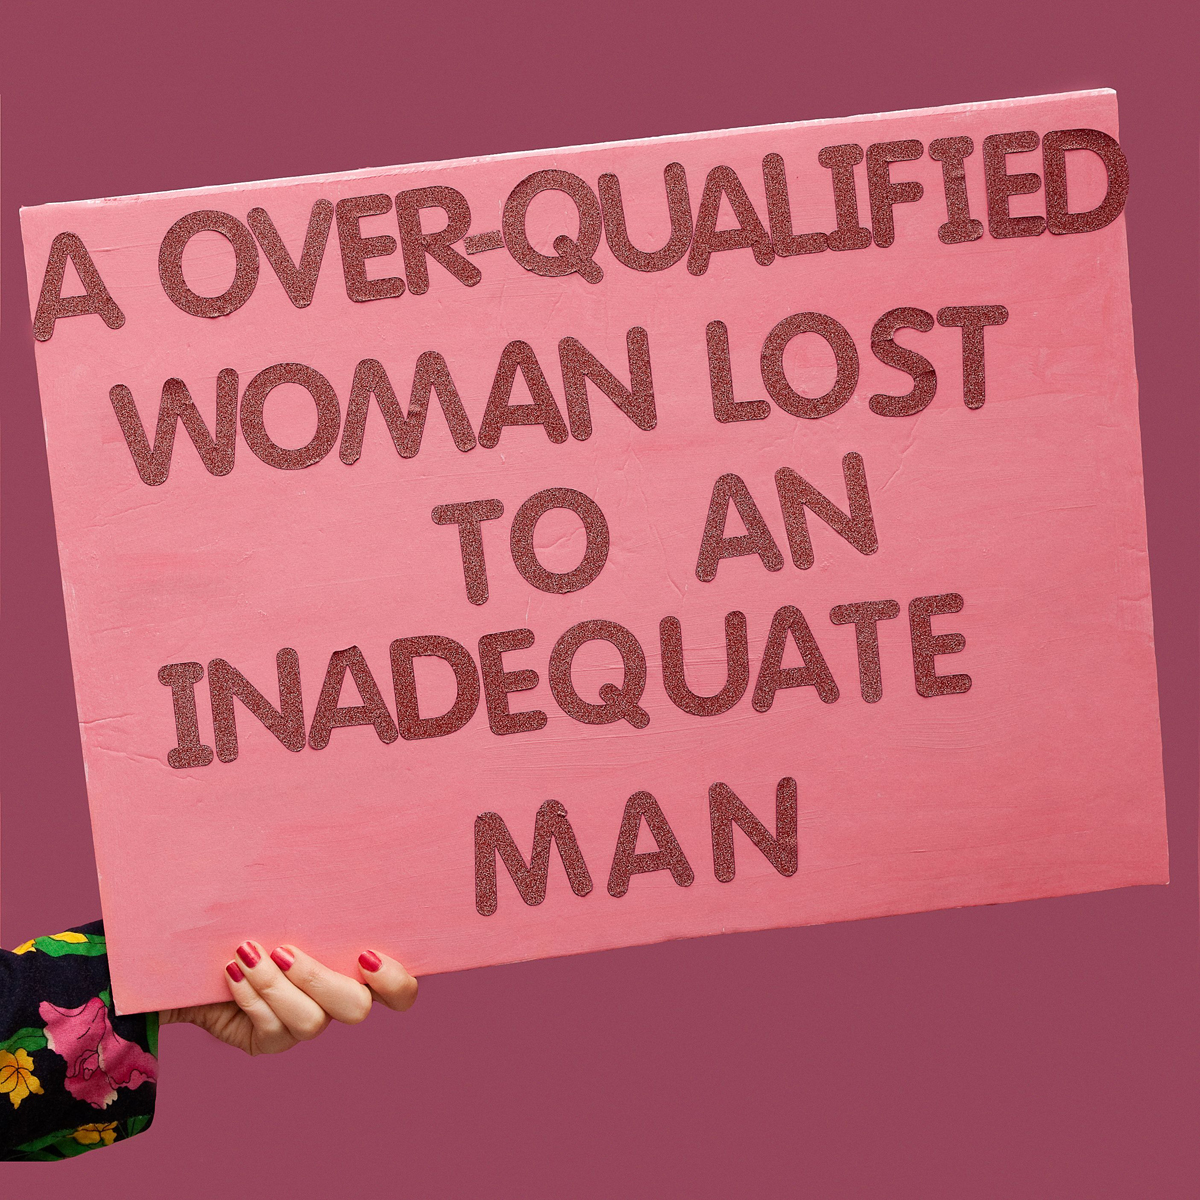 45 Protest Signs_Brandon and Olivia Locher_14_Over Qualified Woman